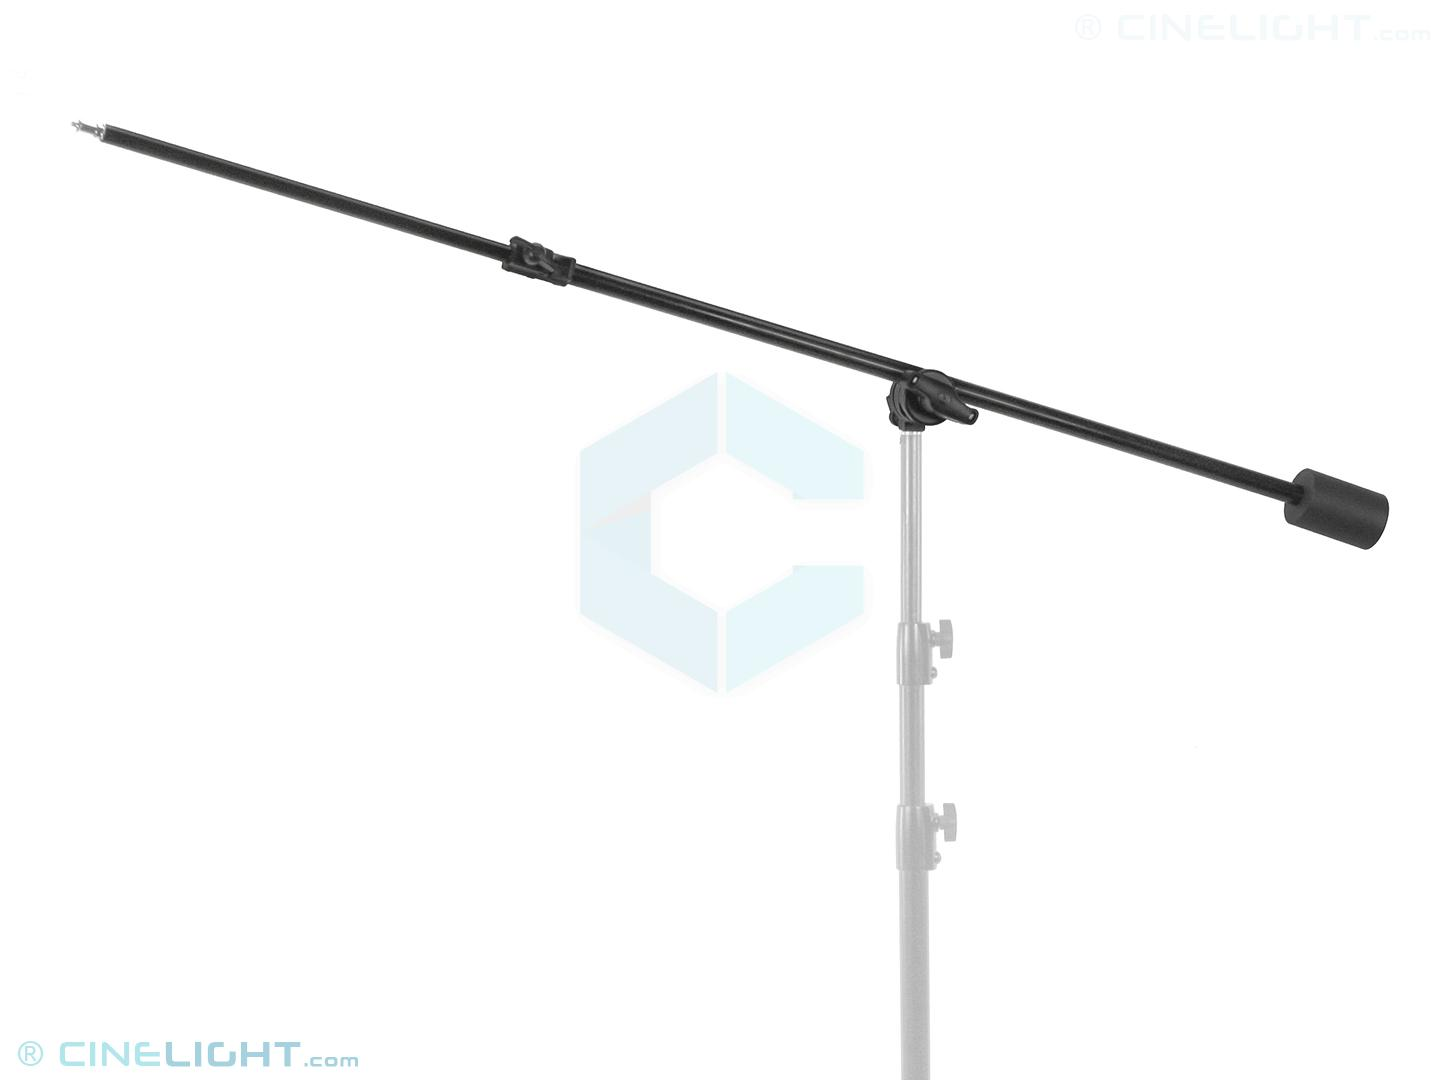 Boom Arm with 3Kg Counterweight